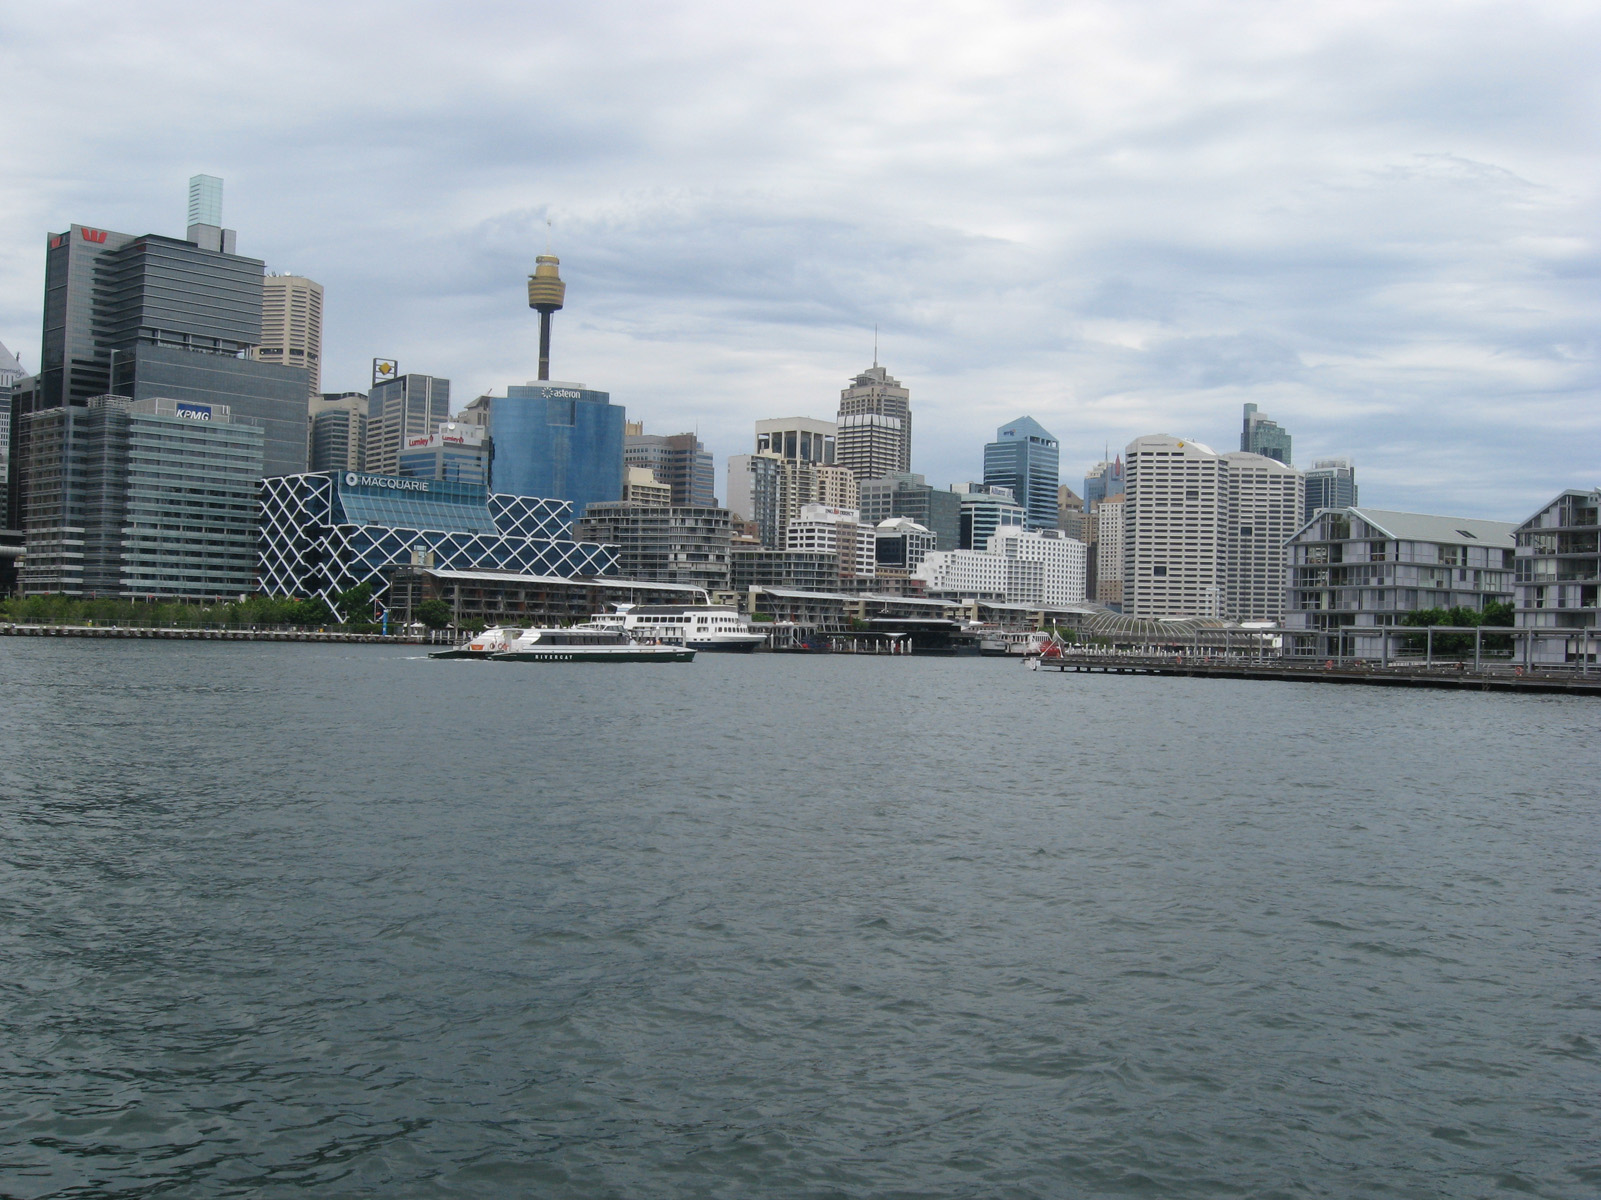 Darling Harbour (1)